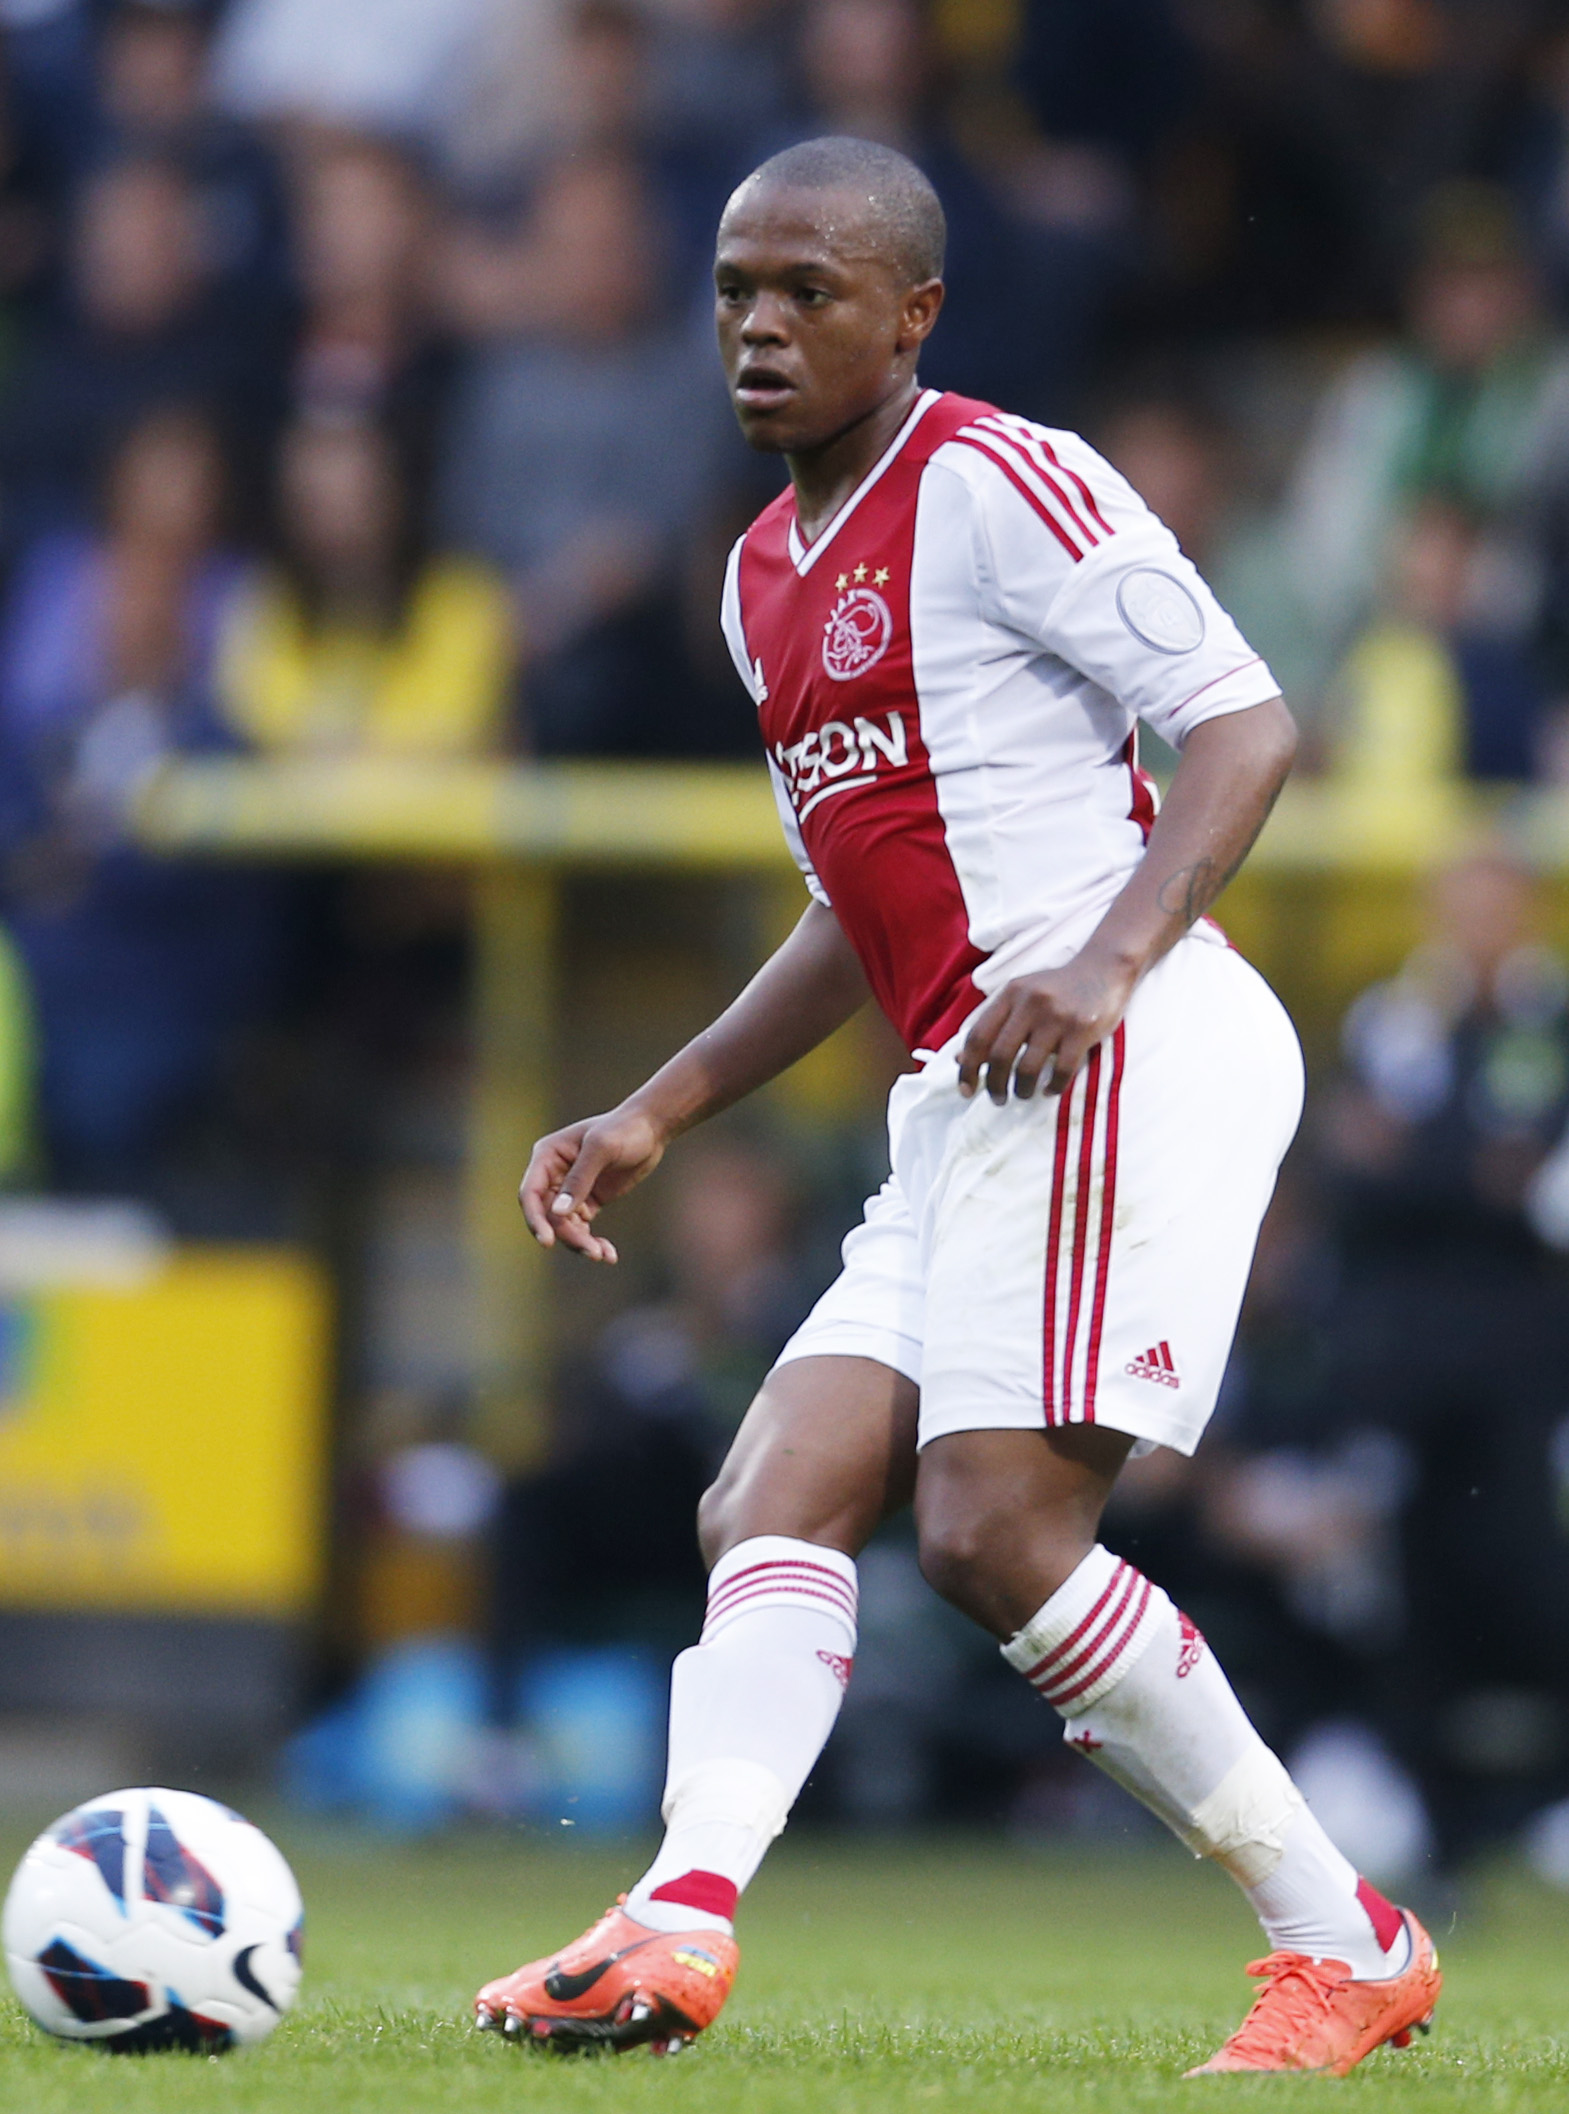 Thulani Serero in action for Ajax Amsterdam. Mosimane's work withSerero has seen the youngster become one of South Africa's best exports.Action Images / Andrew Couldridge